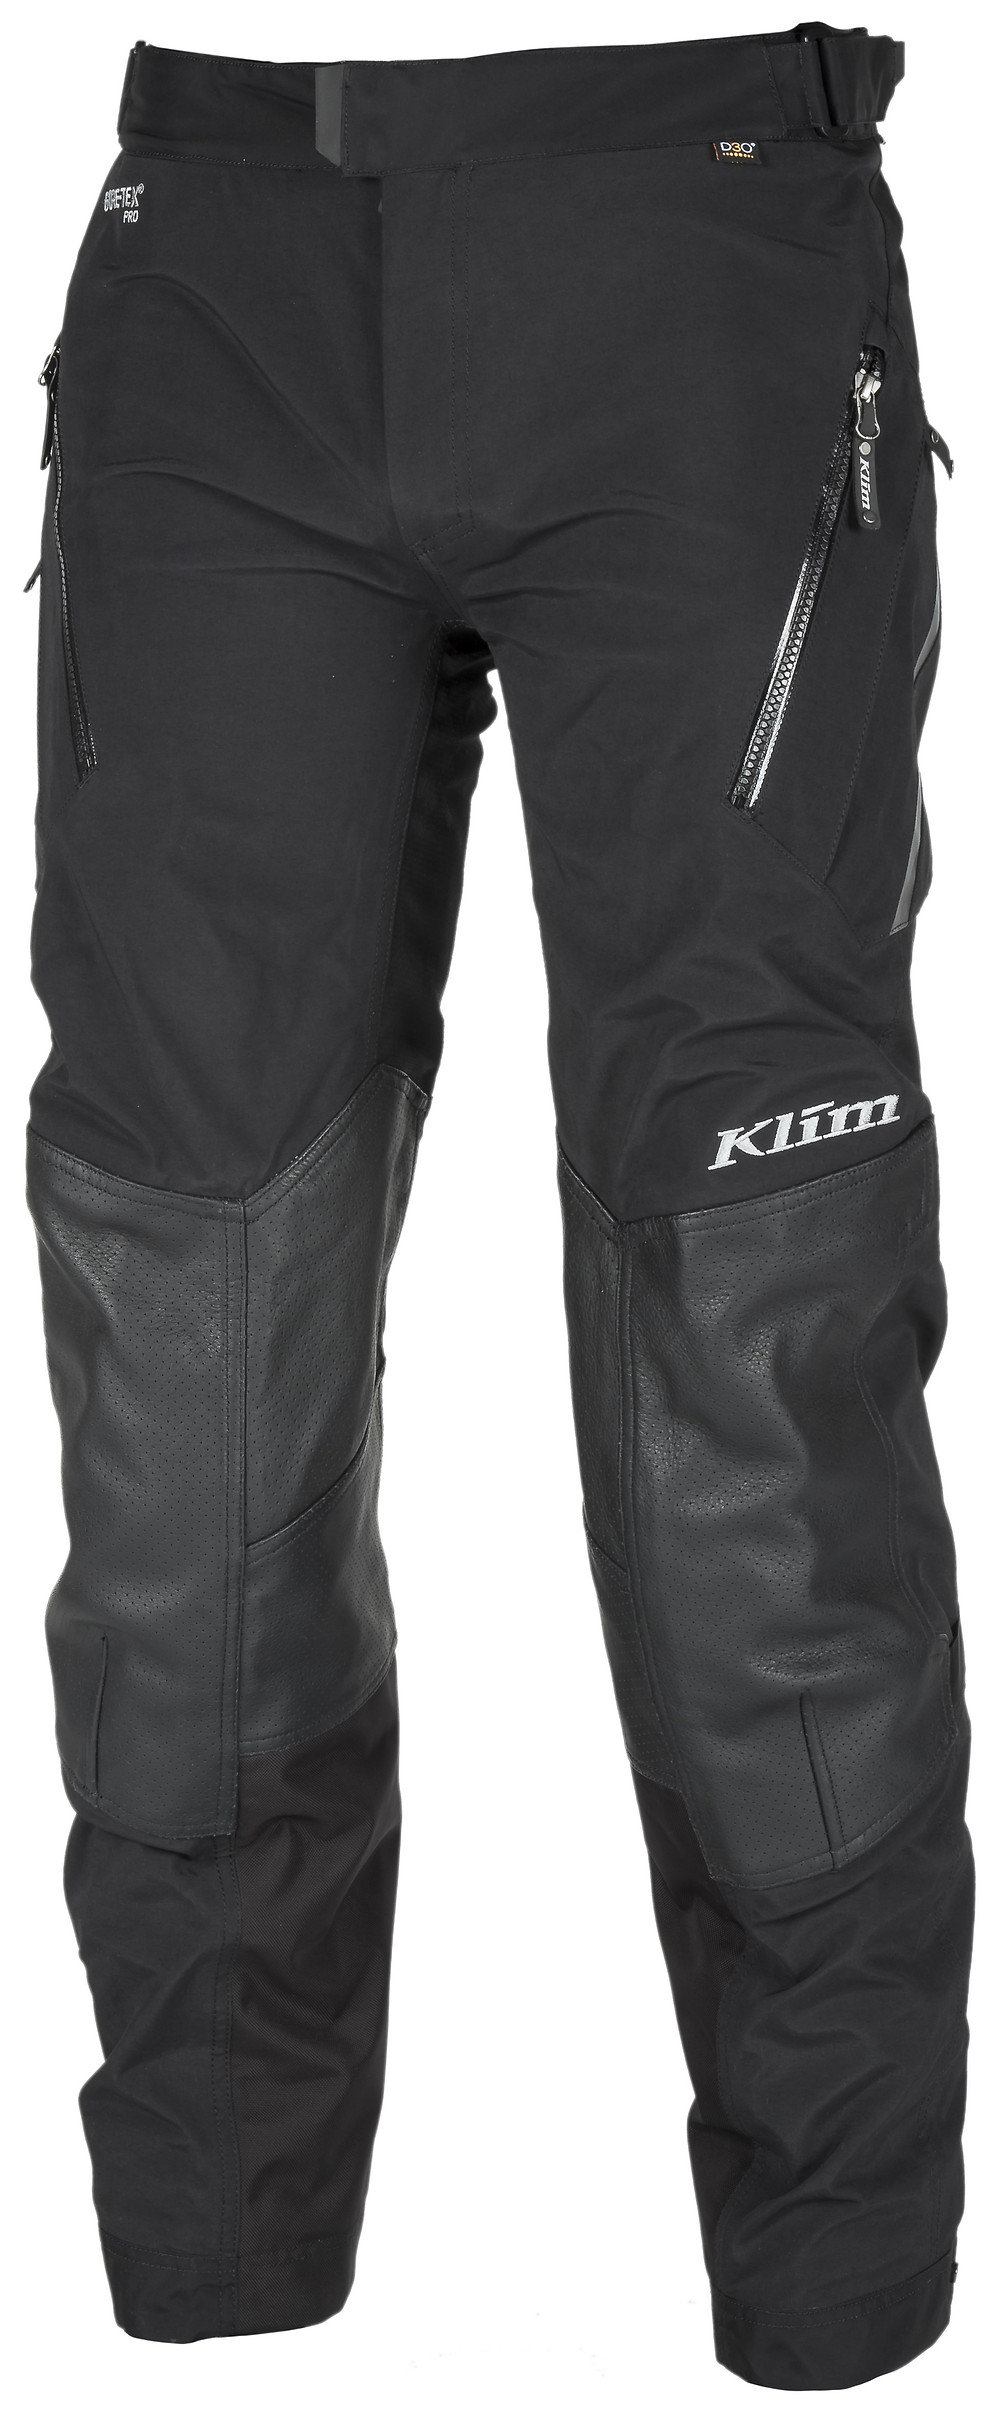 Klim Kodiak Pant Black only